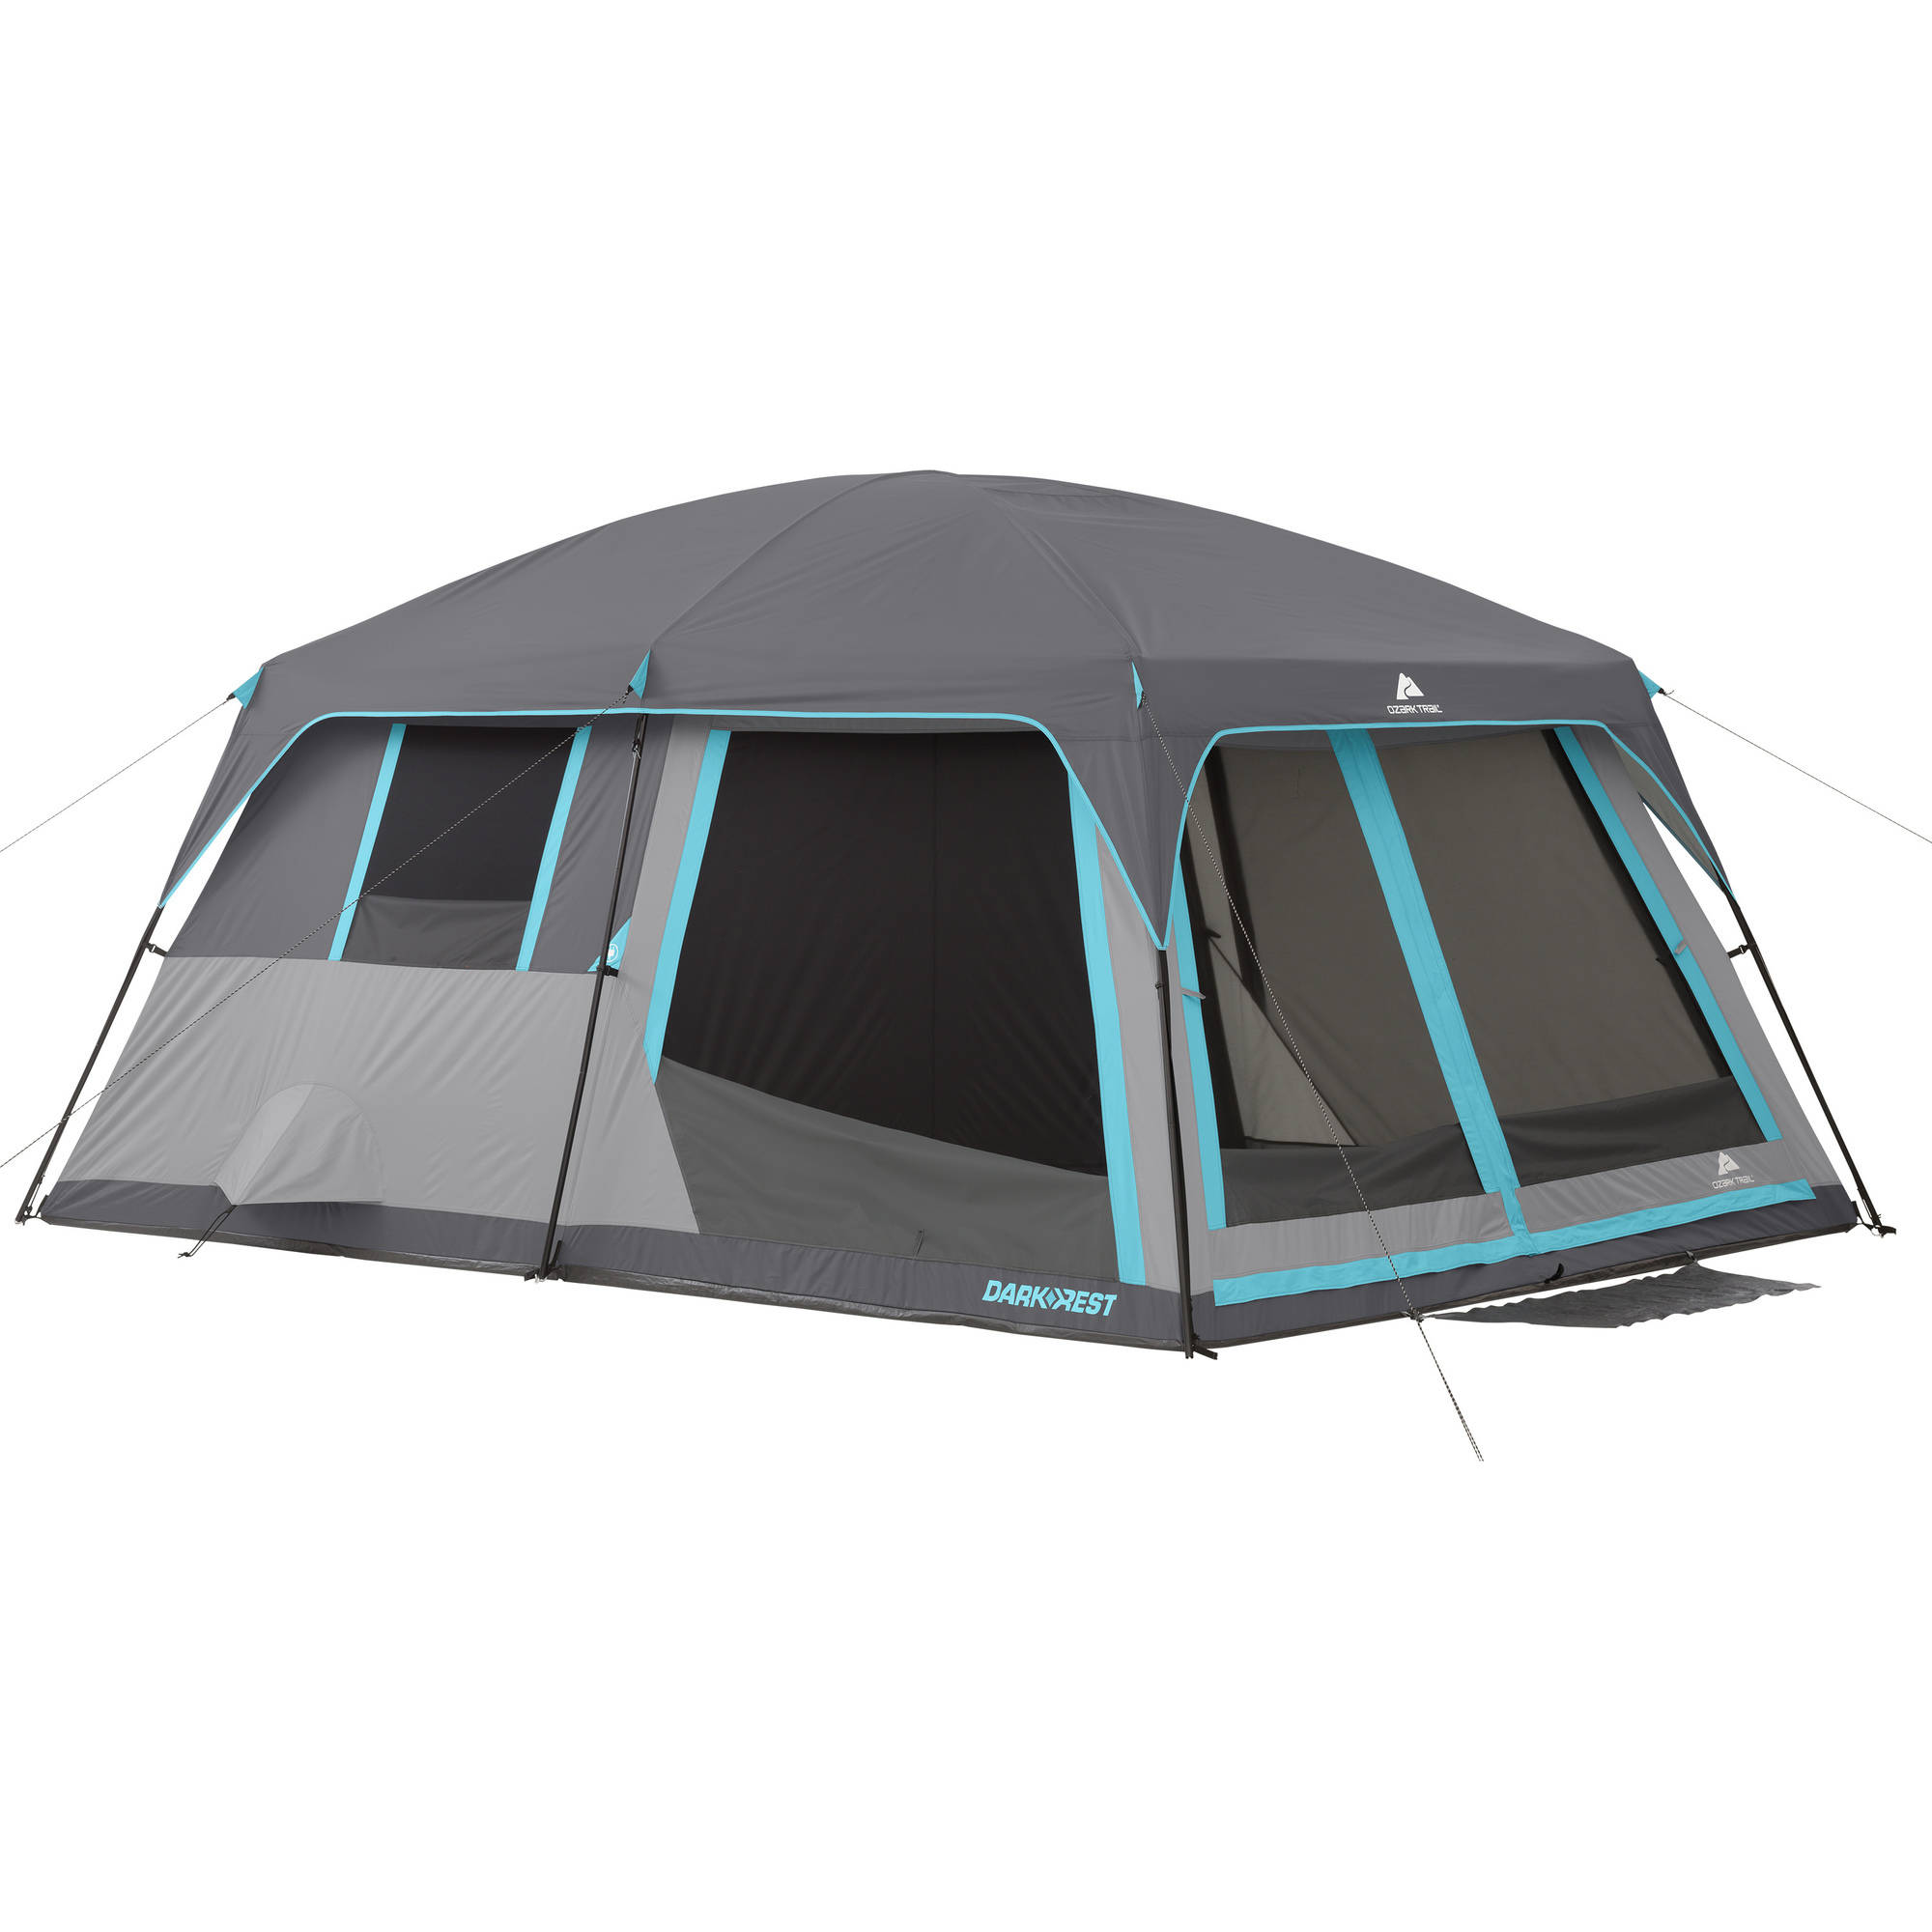 Ozark Trail 14' x 10' Half Dark Rest Frp Cabin Tent, Sleeps 10 by Bohemian Travel Gear Limited